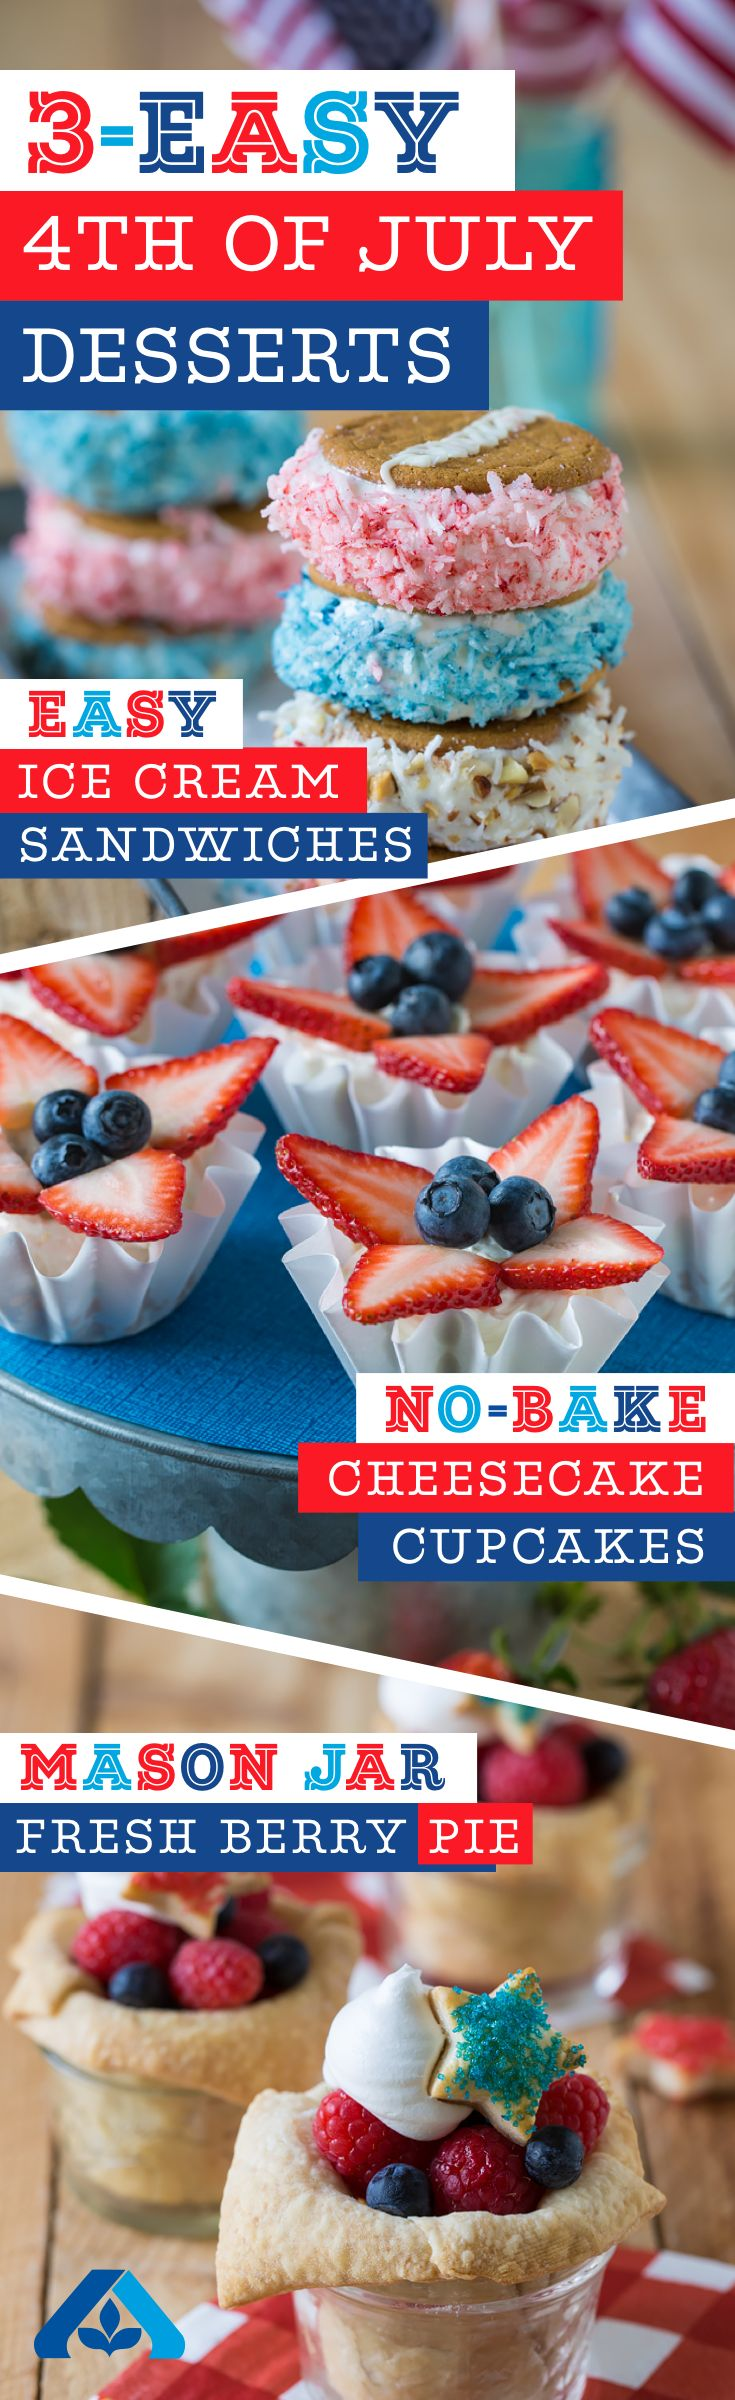 The Fourth of July just got a whole lot sweeter! Check out these three delicious and patriotic desserts, perfect for your Fourth of July celebration!